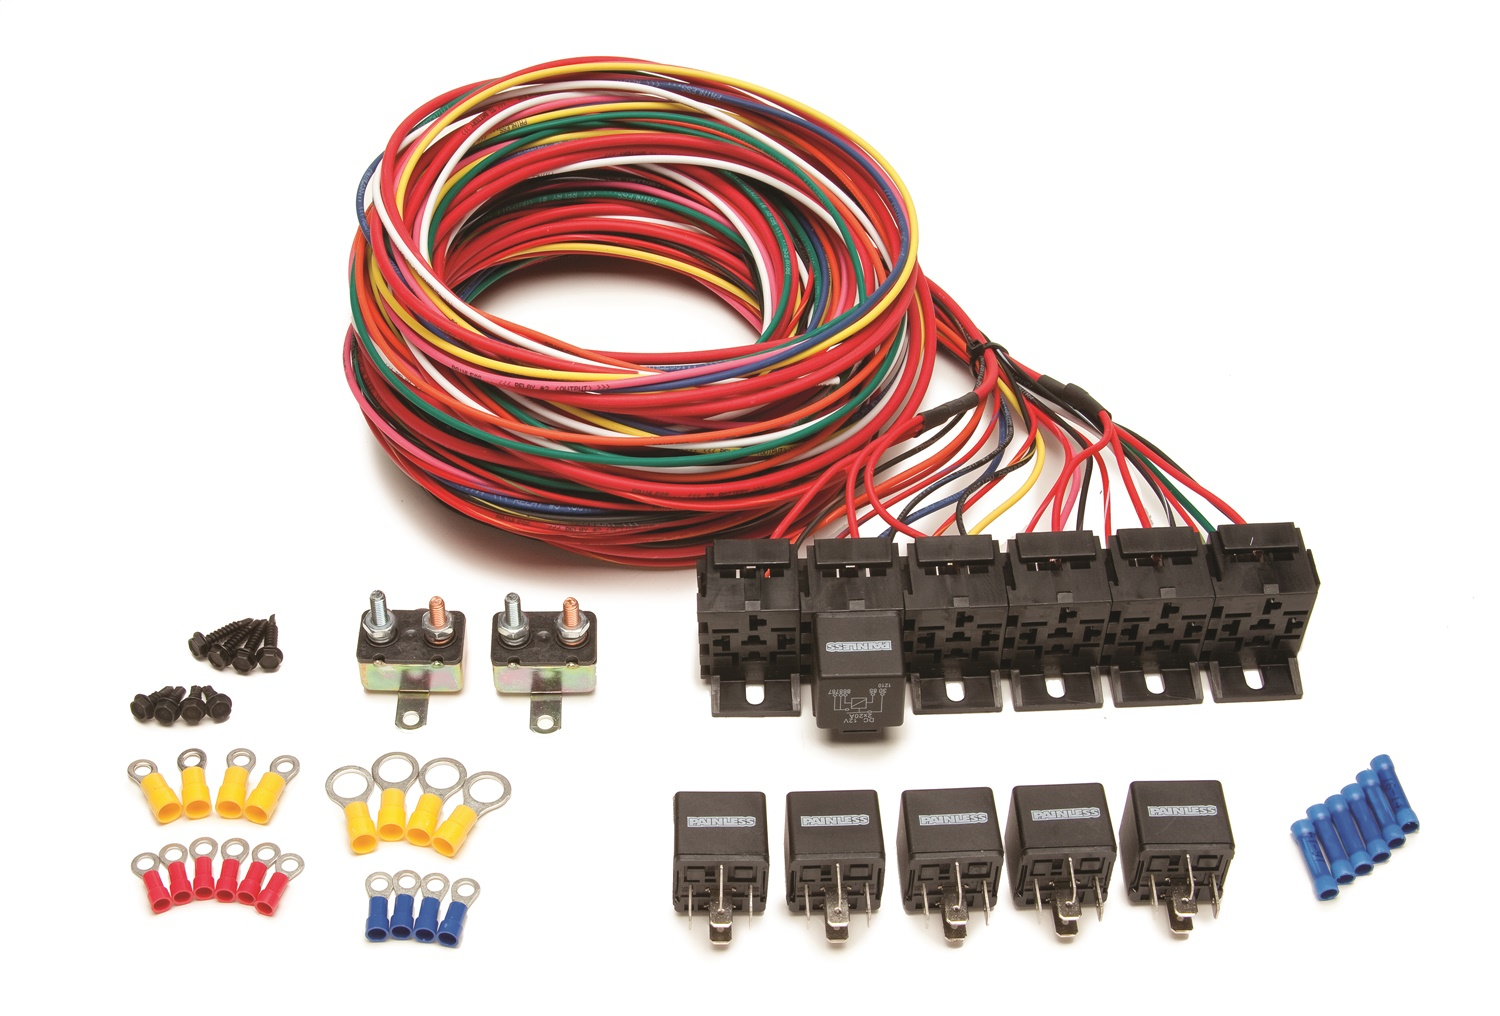 Pleasant Wrg 2228 Painless Wiring Harness Ebay Wiring Cloud Tobiqorsaluggs Outletorg